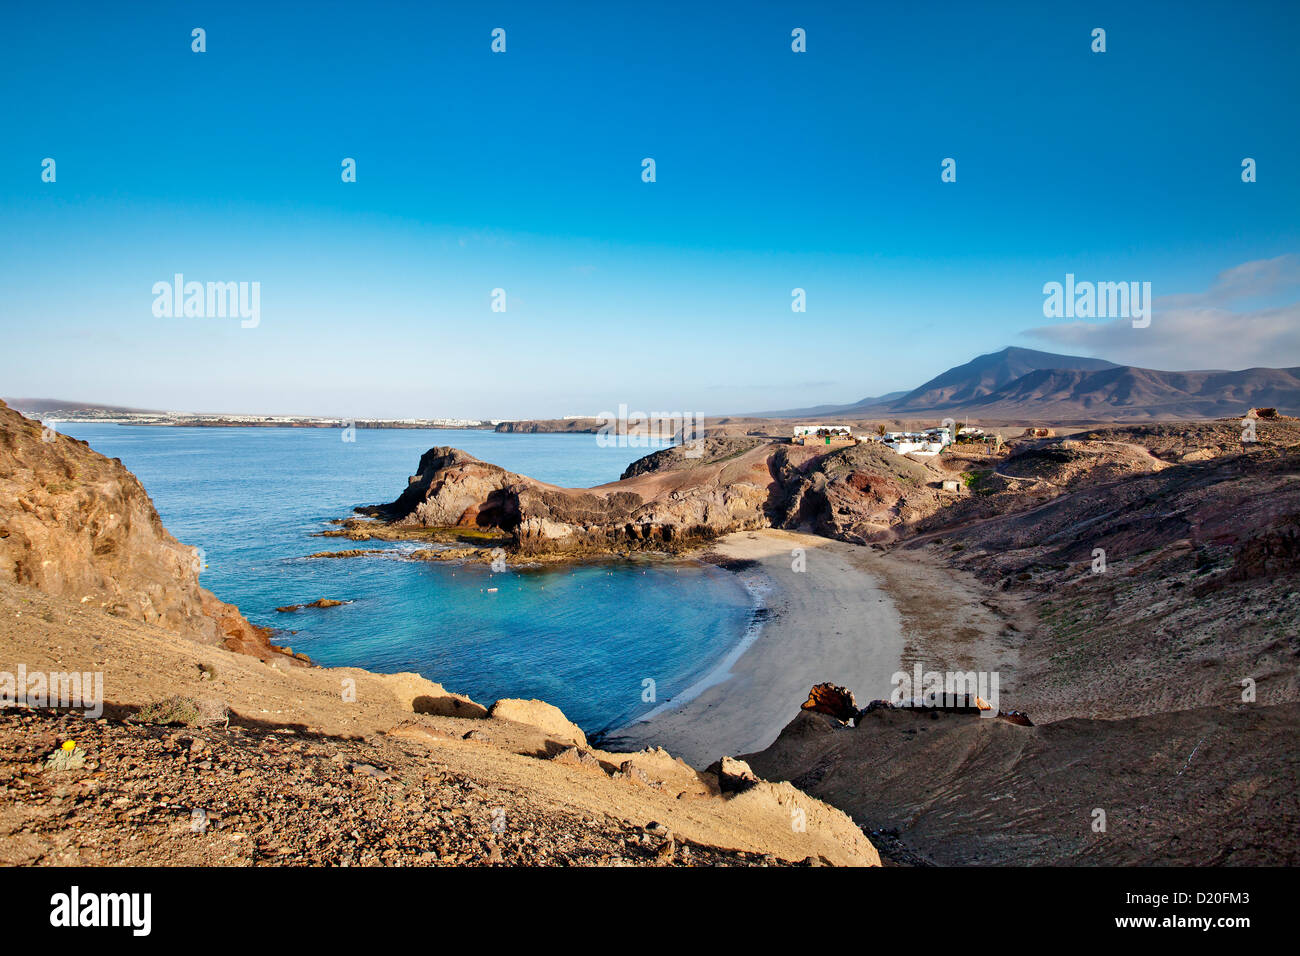 Playa Papagayo in a bay, Lanzarote, Canary Islands, Spain, Europe - Stock Image